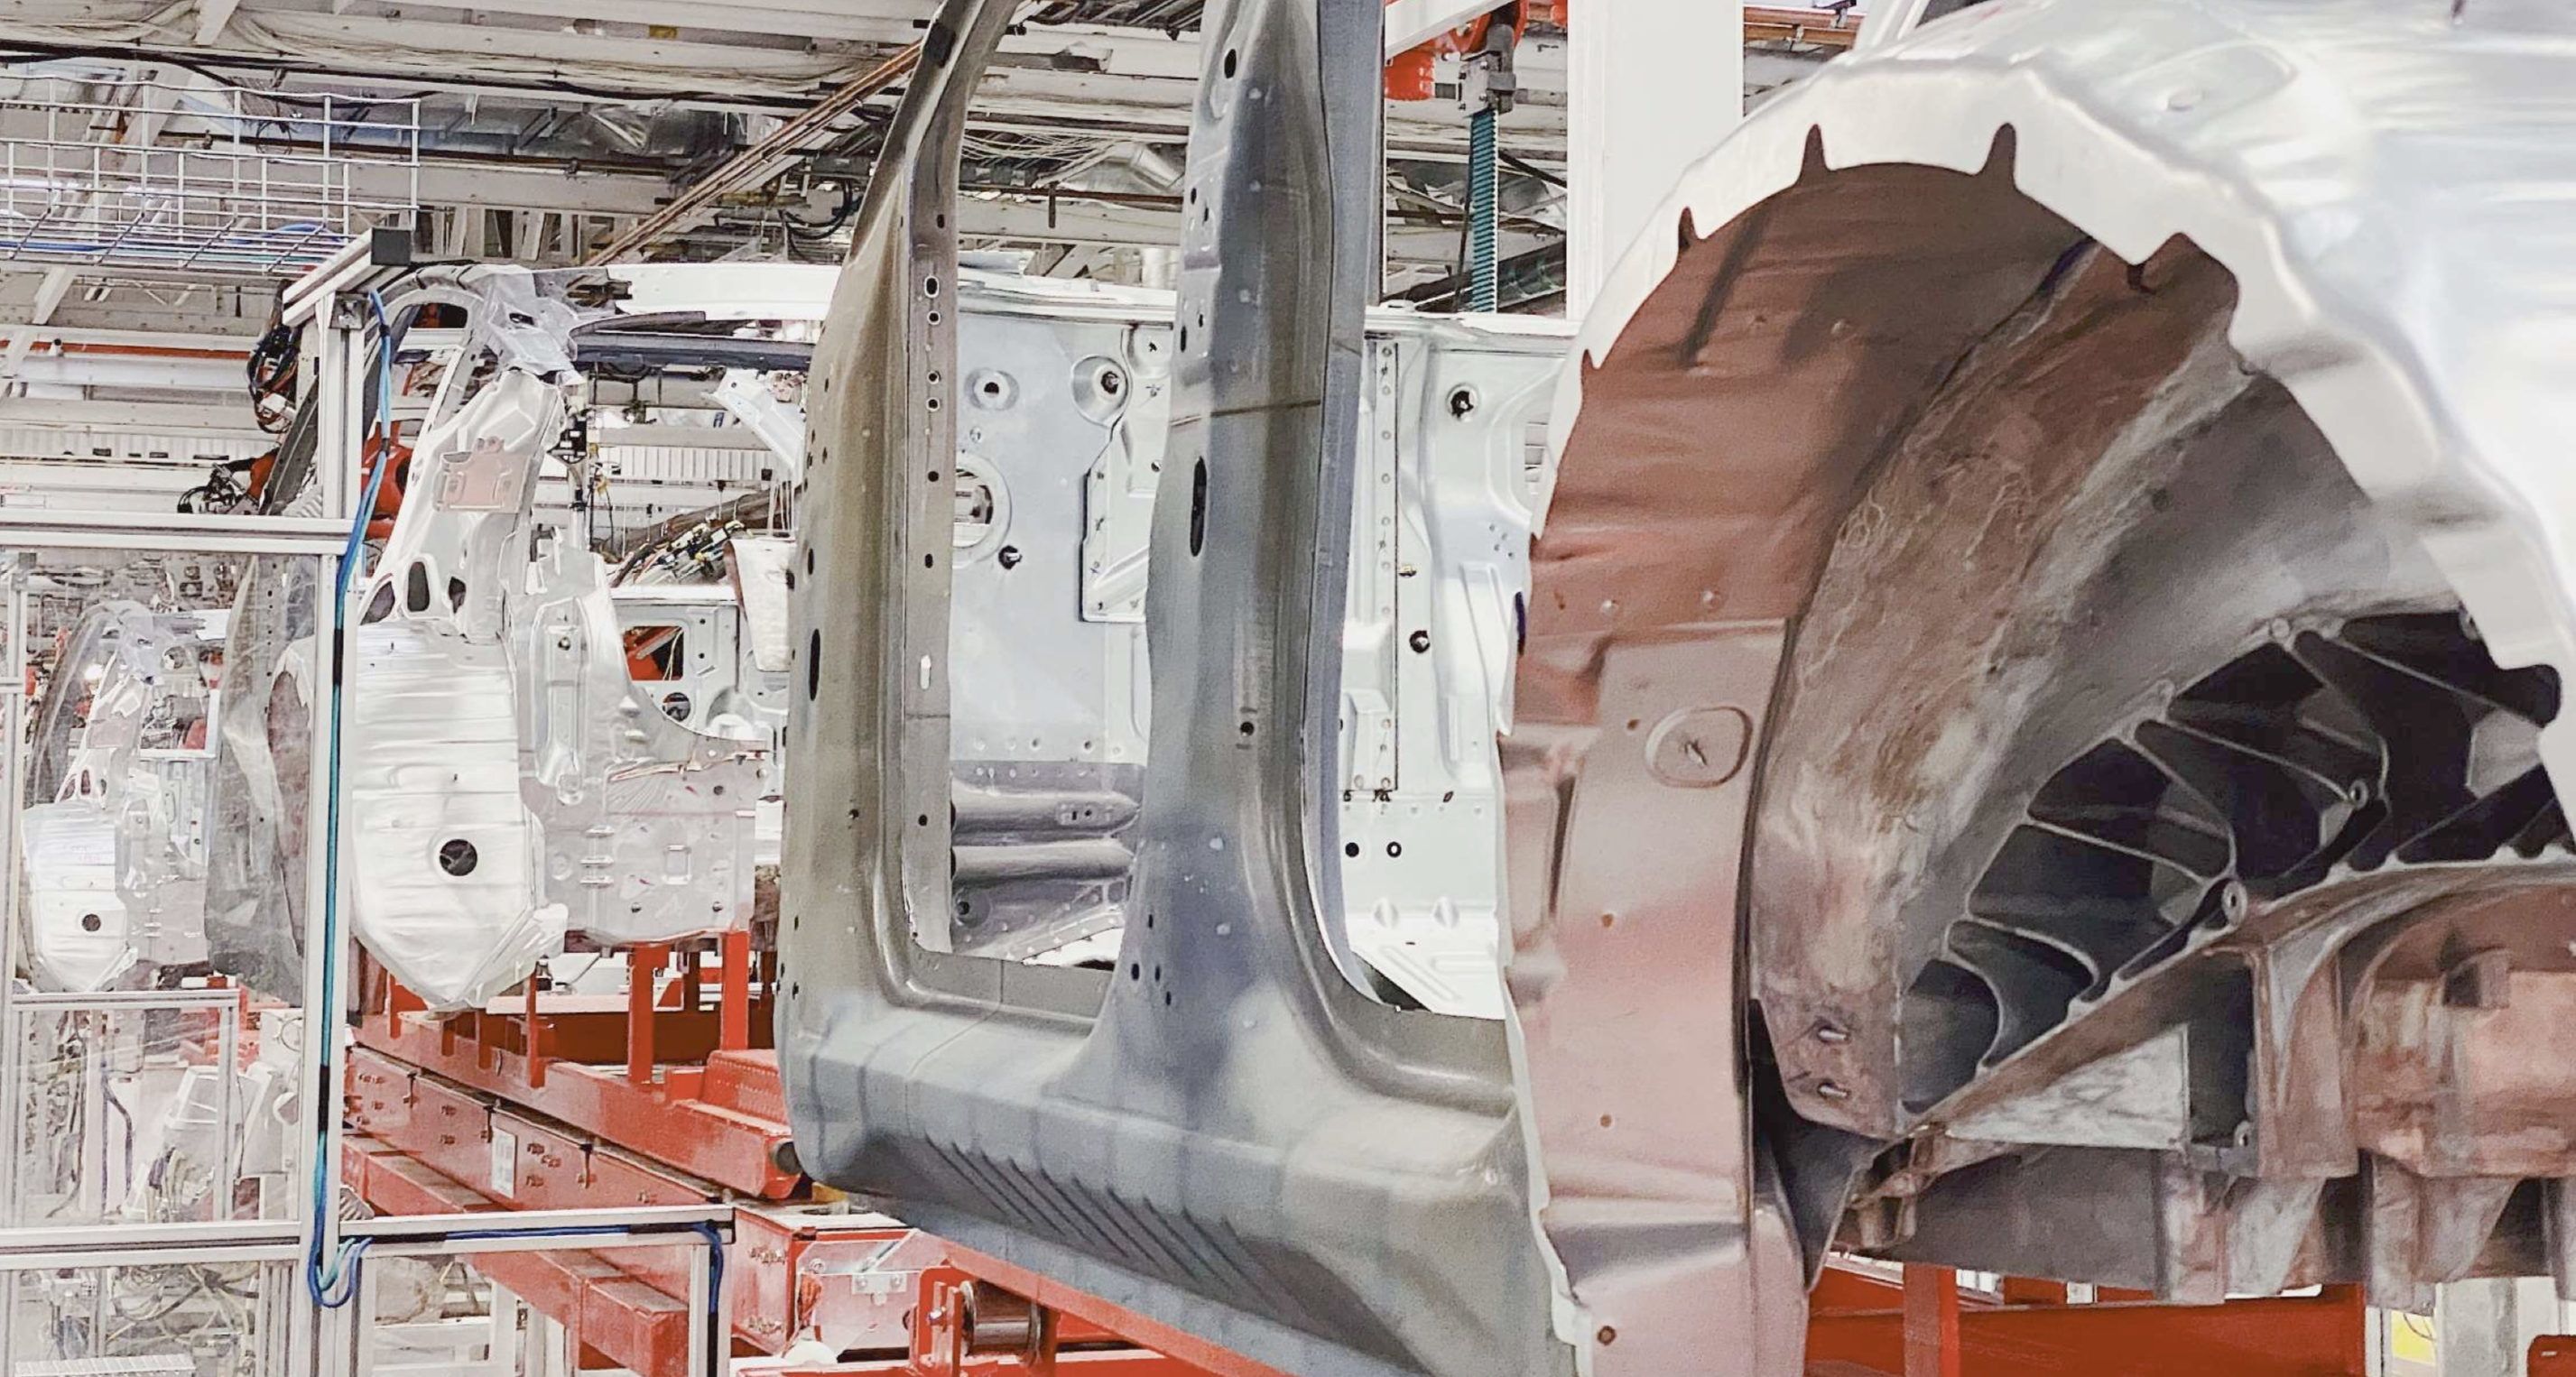 Tesla Model Y body shop image to show vehicle building process